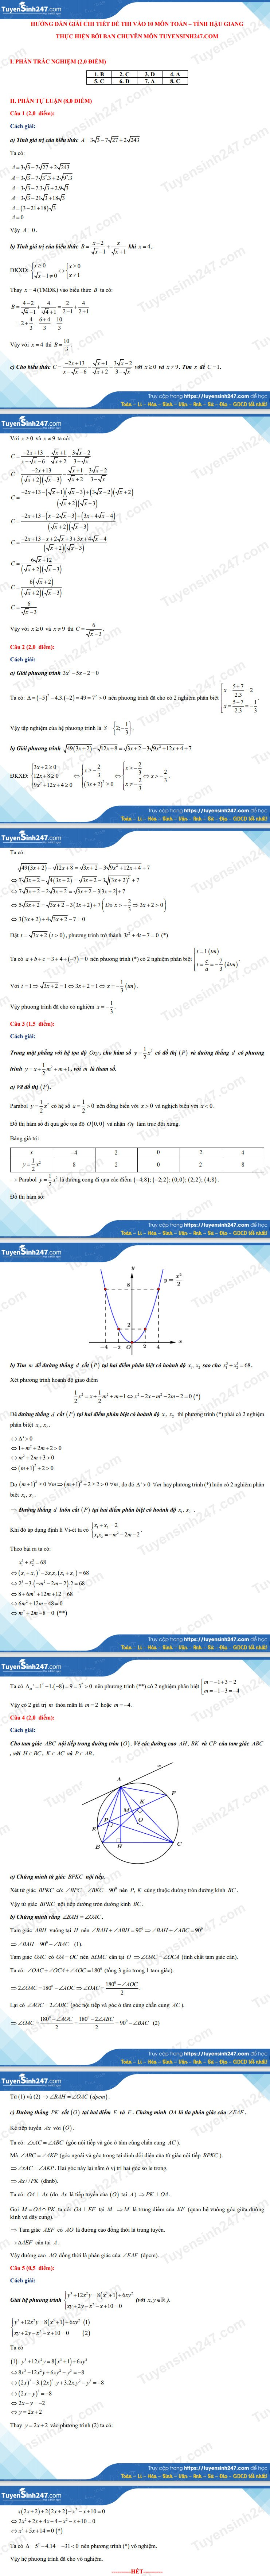 Answers to the 10th grade math exam in Hau Giang province 2021 4